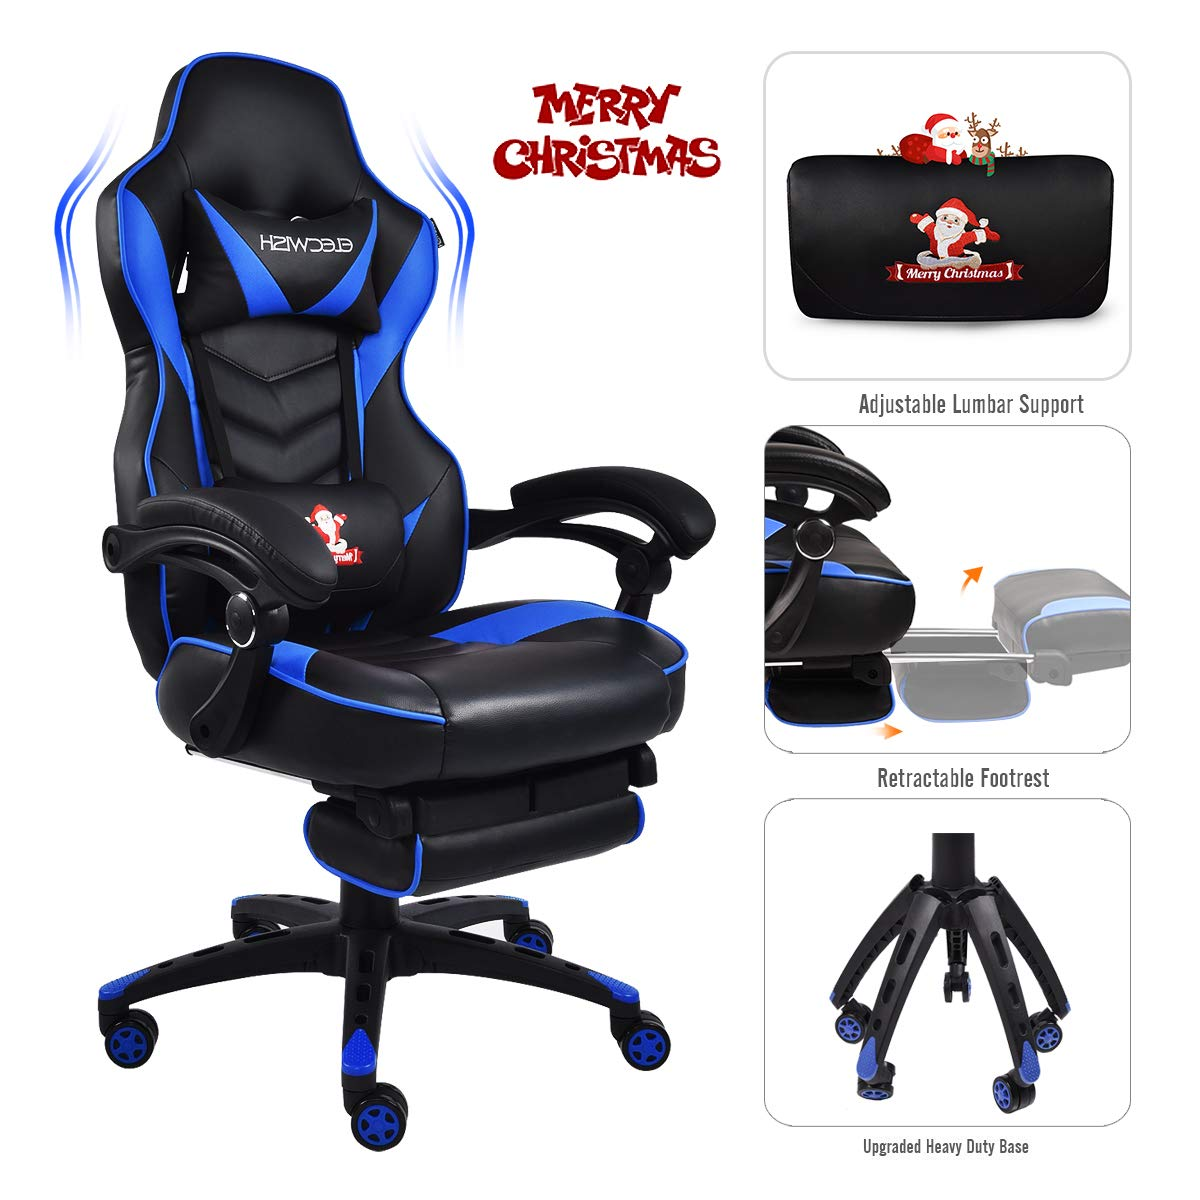 Video Gaming Chair Racing Office – PU Leather High Back Ergonomic Adjustable Swivel Executive Computer Desk Task For Adults Large Size With Footrest,Headrest and Lumbar Support Black blue